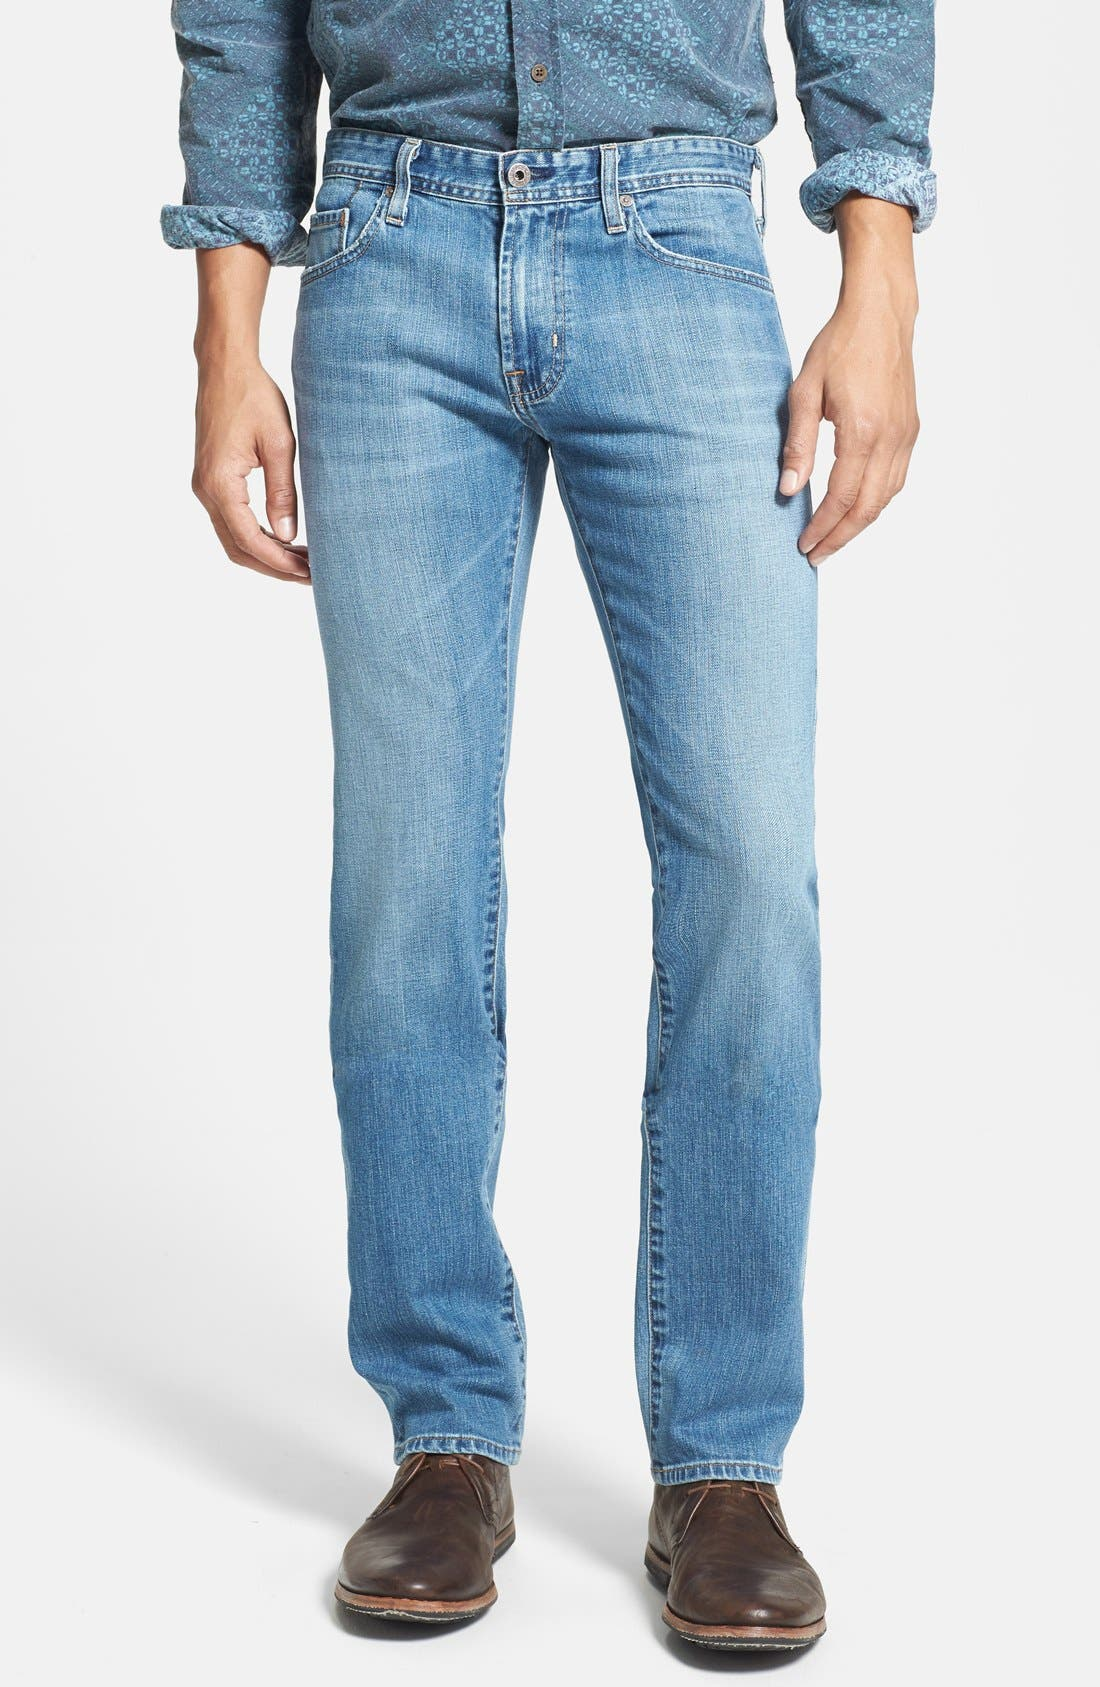 Alternate Image 1 Selected - AG 'Matchbox' Slim Fit Jeans (Swift)